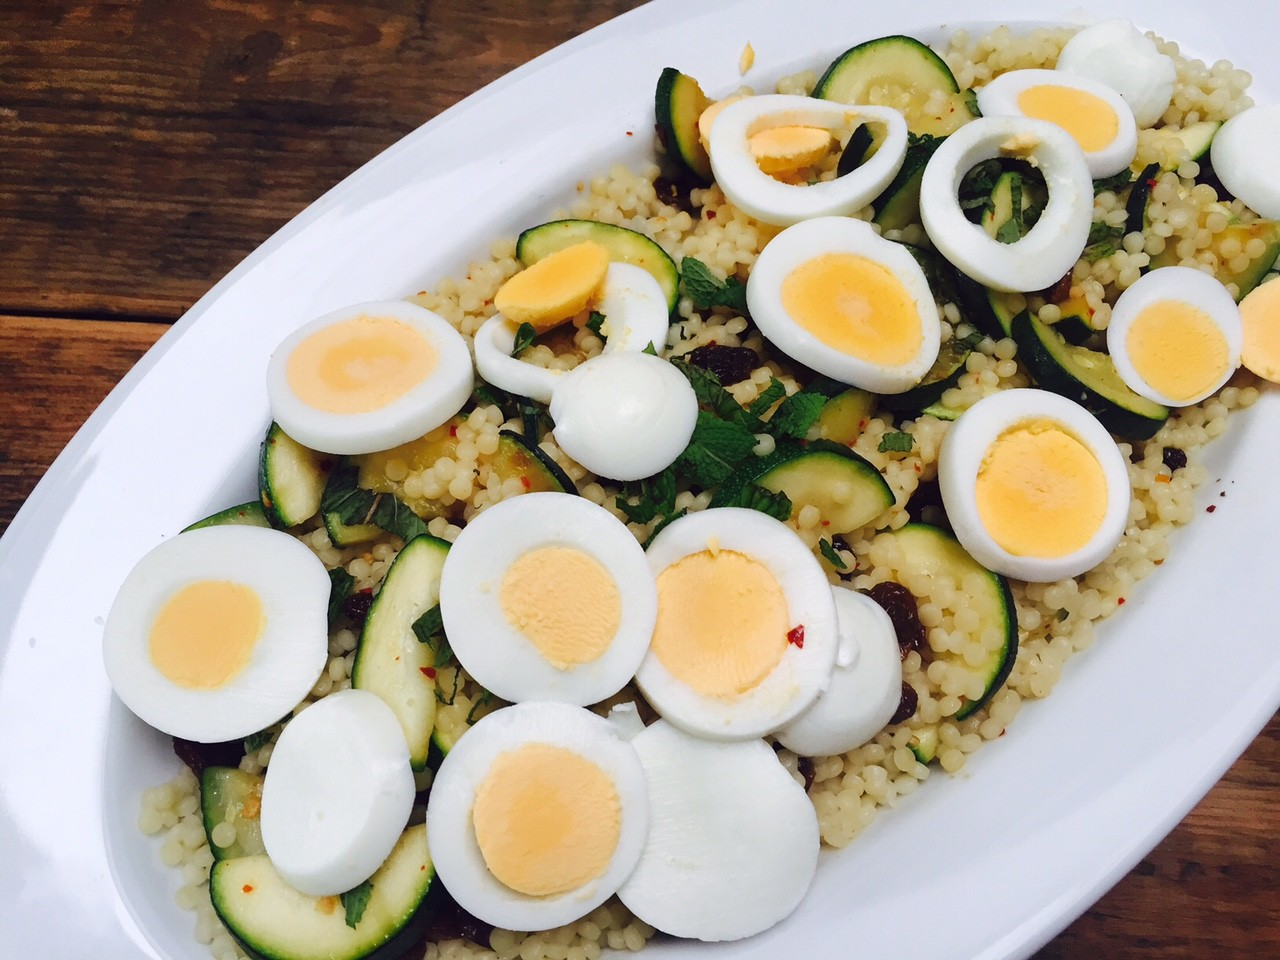 Parelcouscous salade met gegrilde courgette recept foodblog Foodinista